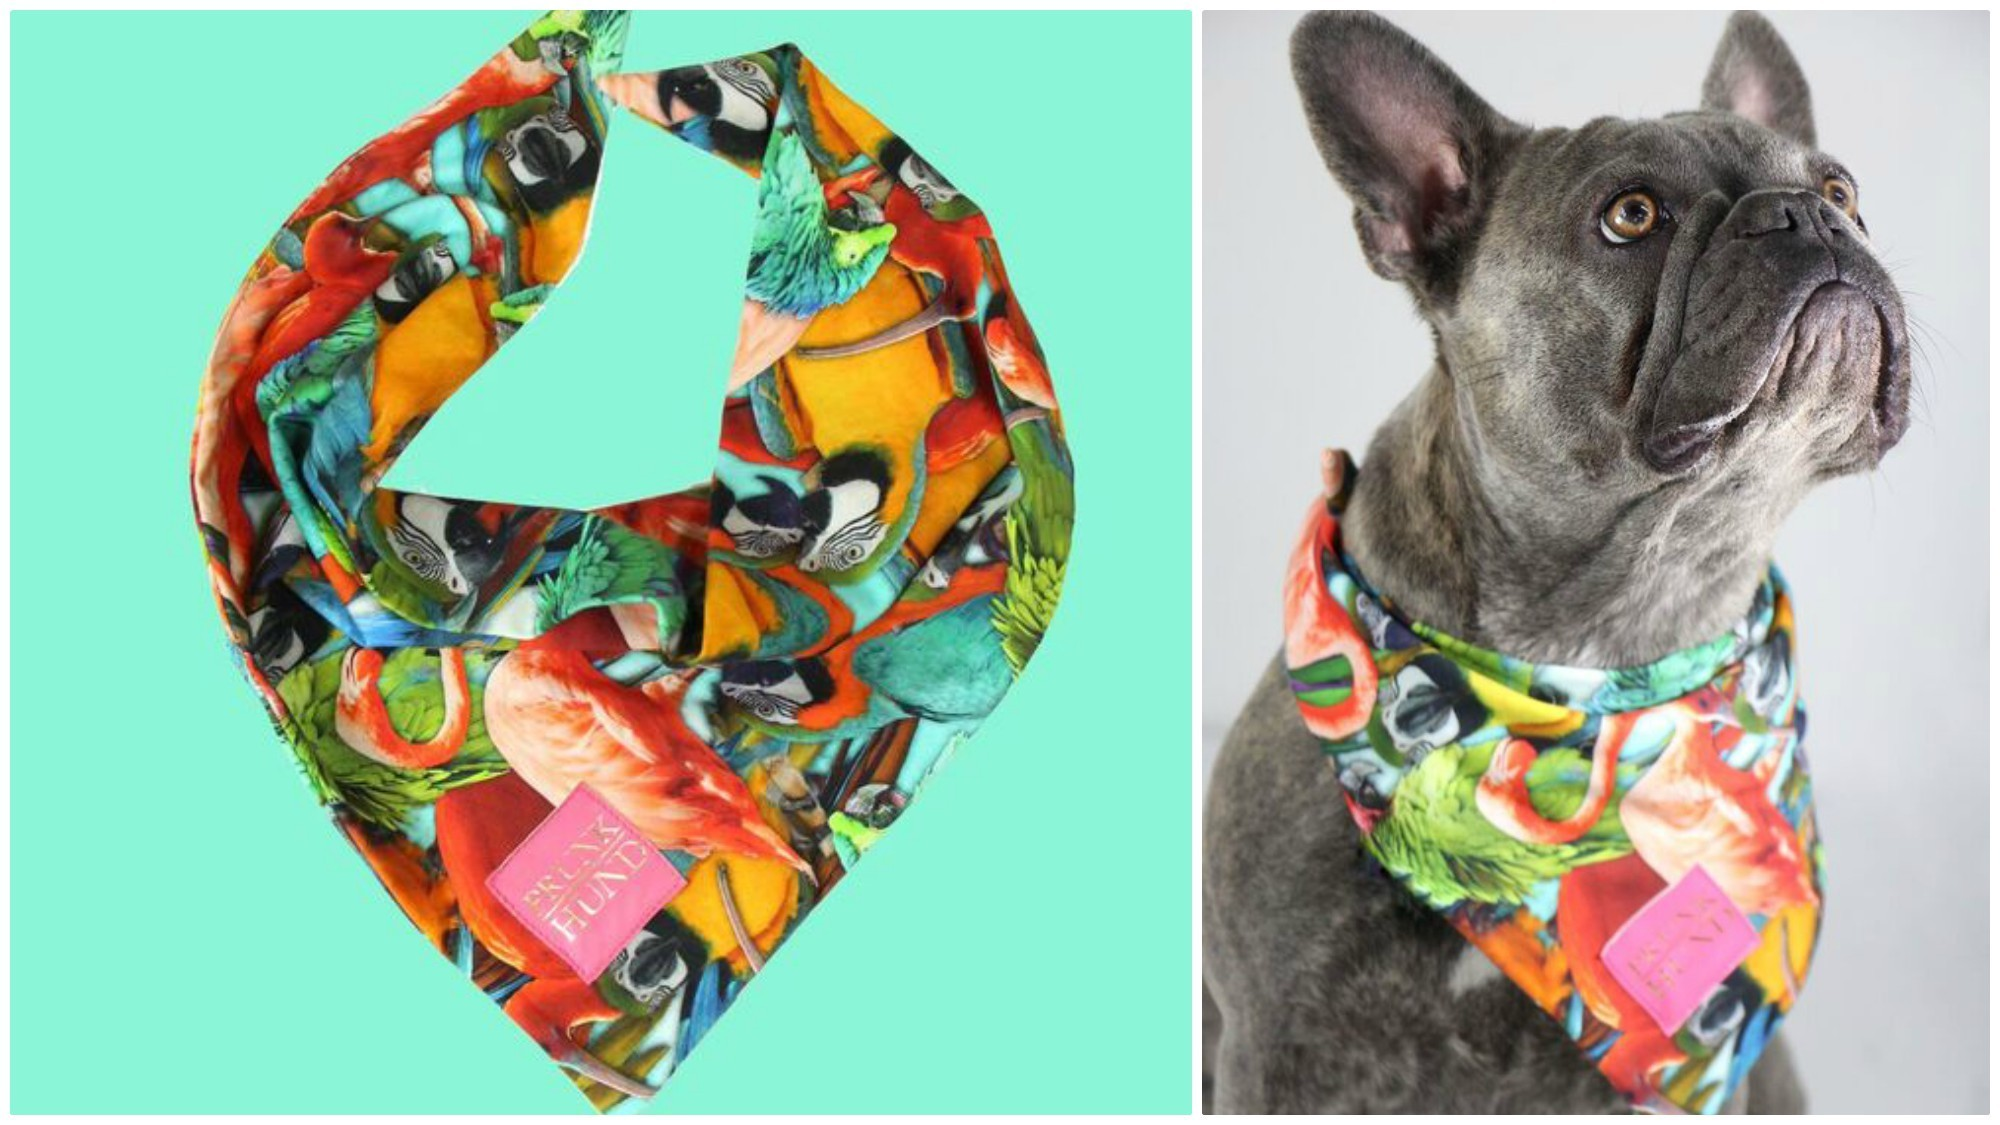 BEAUTIFUL FASHIONABLE PETS WOMEN CAN OWN IN THEIR HOME TO ENJOY 7